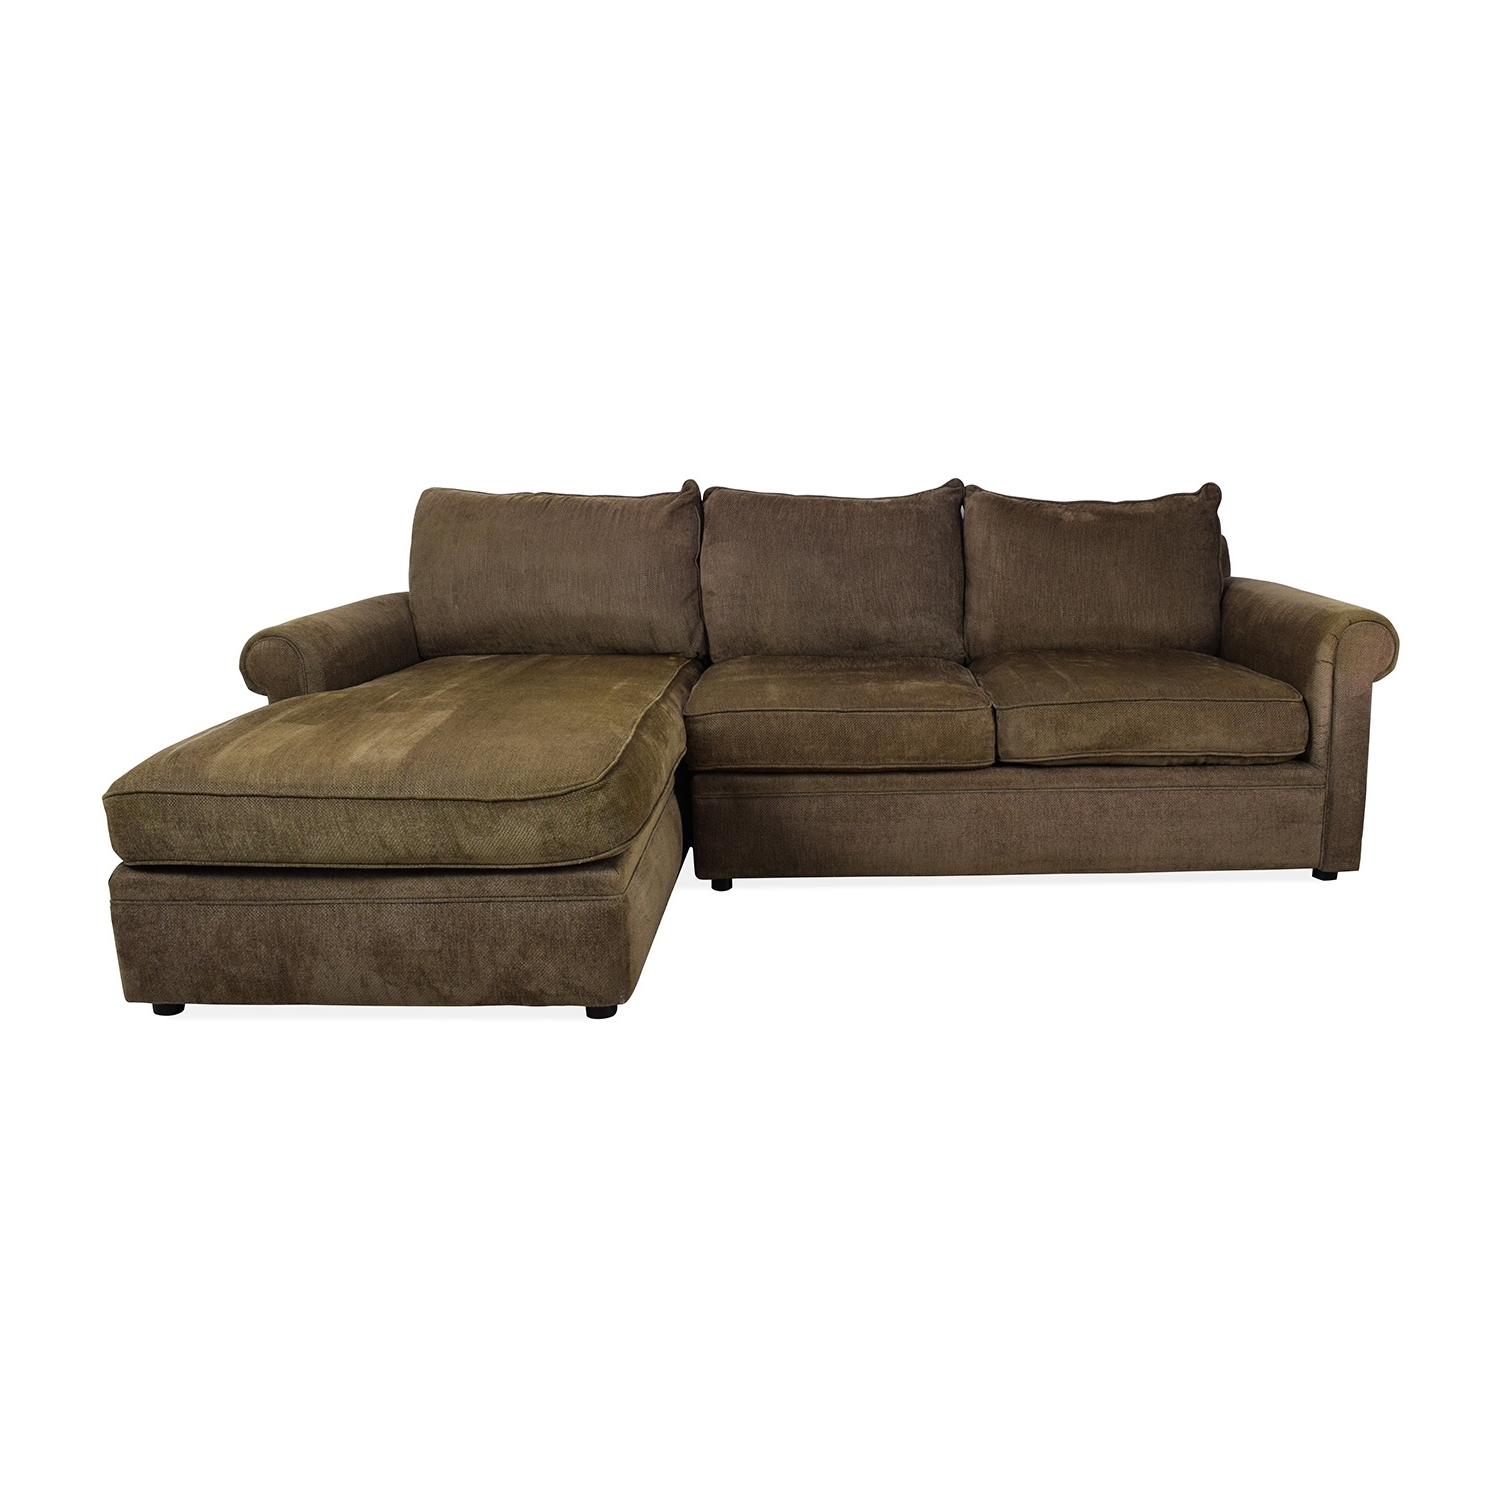 [%83% Off – Bloomingdales Bloomingdale's Sectional / Sofas With Most Current Nj Sectional Sofas|Nj Sectional Sofas Within Trendy 83% Off – Bloomingdales Bloomingdale's Sectional / Sofas|Best And Newest Nj Sectional Sofas Inside 83% Off – Bloomingdales Bloomingdale's Sectional / Sofas|Newest 83% Off – Bloomingdales Bloomingdale's Sectional / Sofas Intended For Nj Sectional Sofas%] (View 1 of 15)